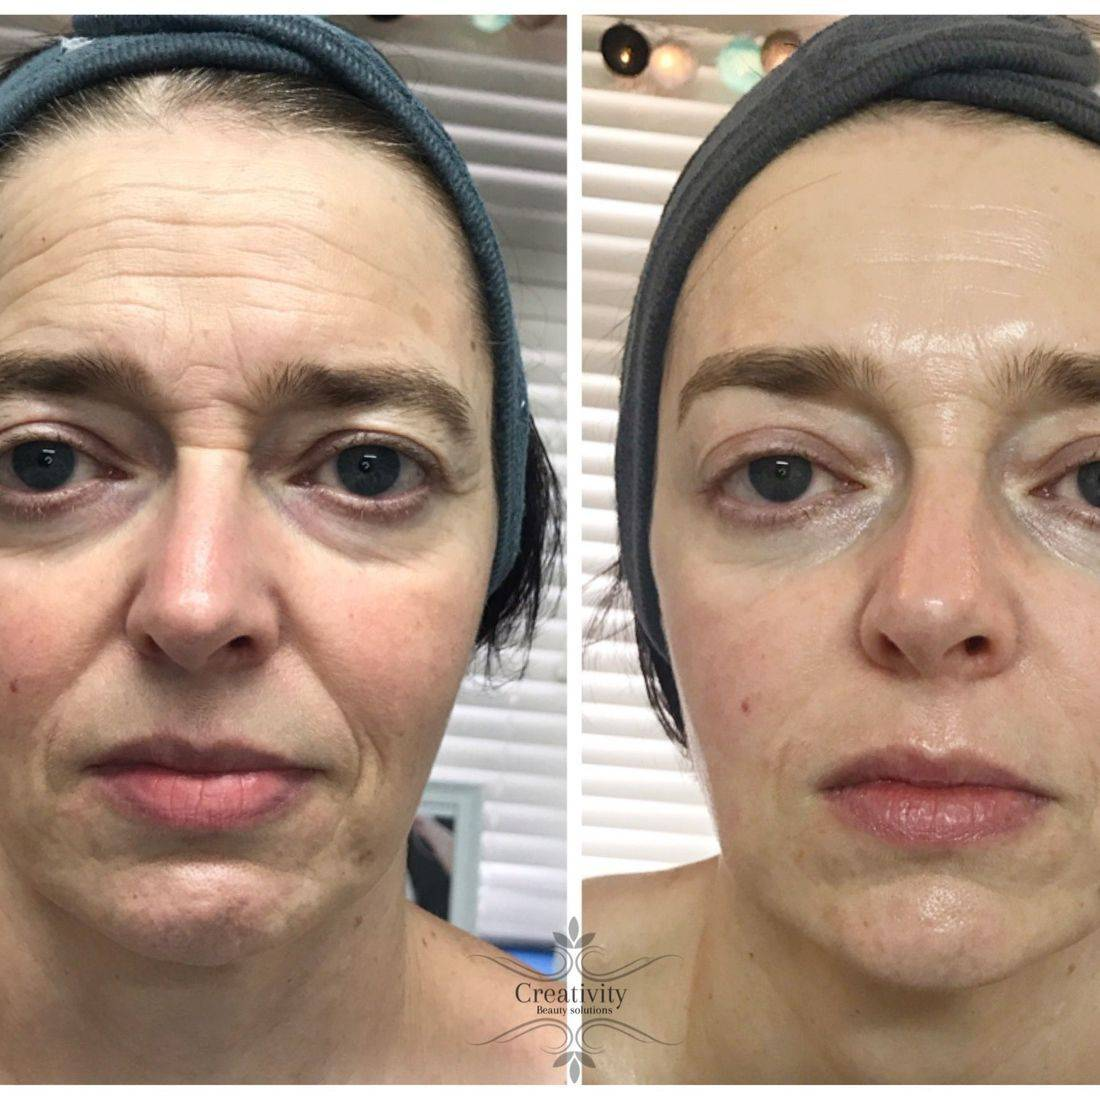 Creativity Beauty Solutions Demalogica Non surgical facelift Caci results